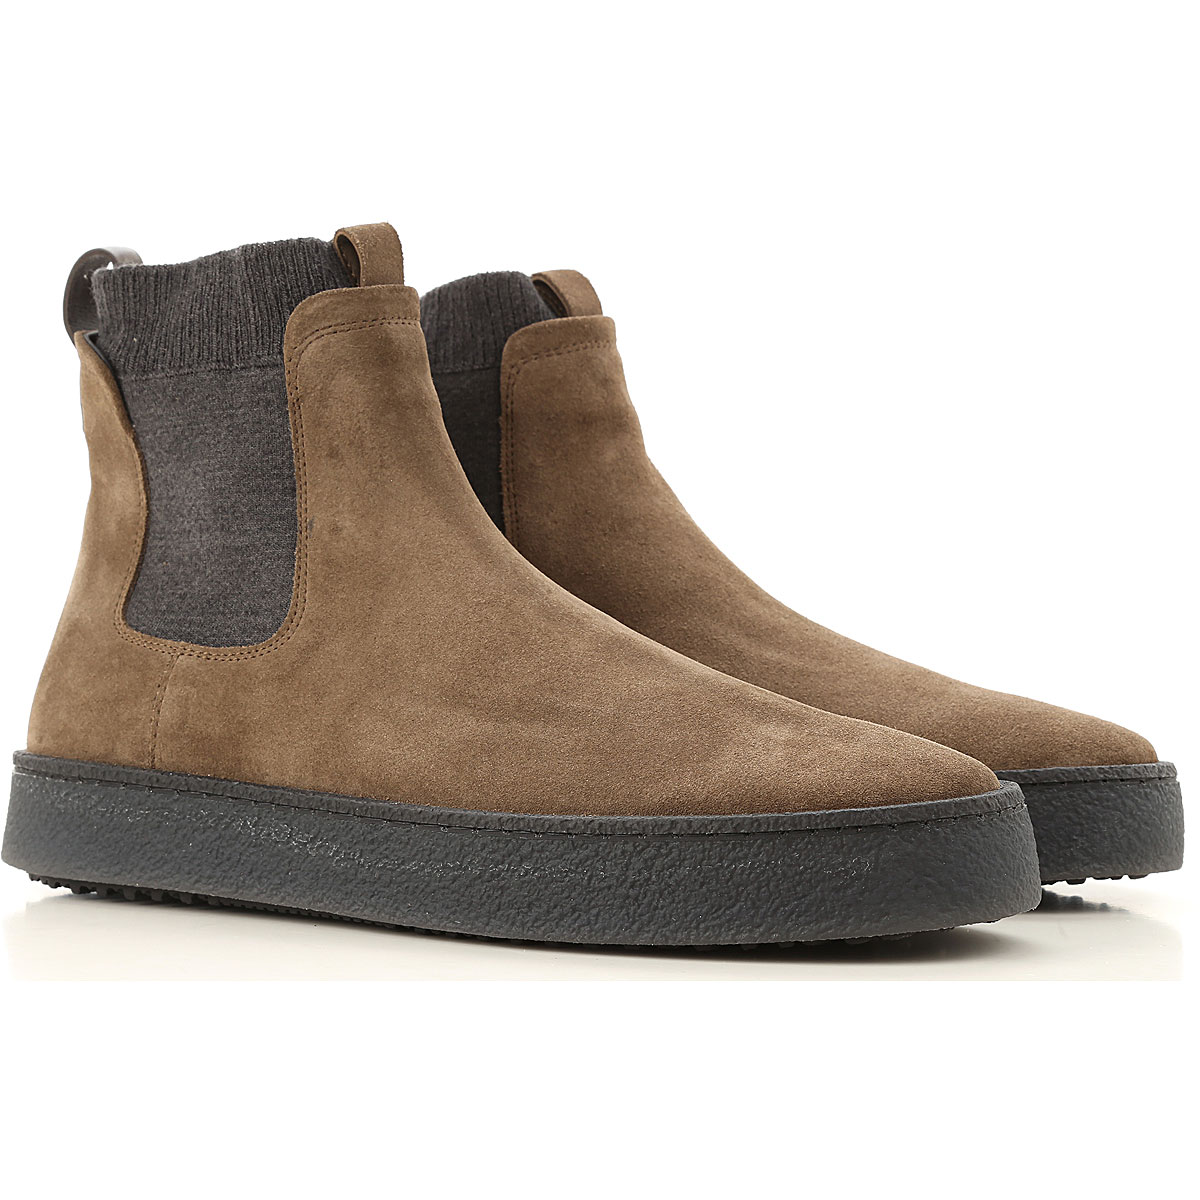 Hogan Desert Boots Chukka for Men On Sale, Mud, suede, 2019, 8 8.5